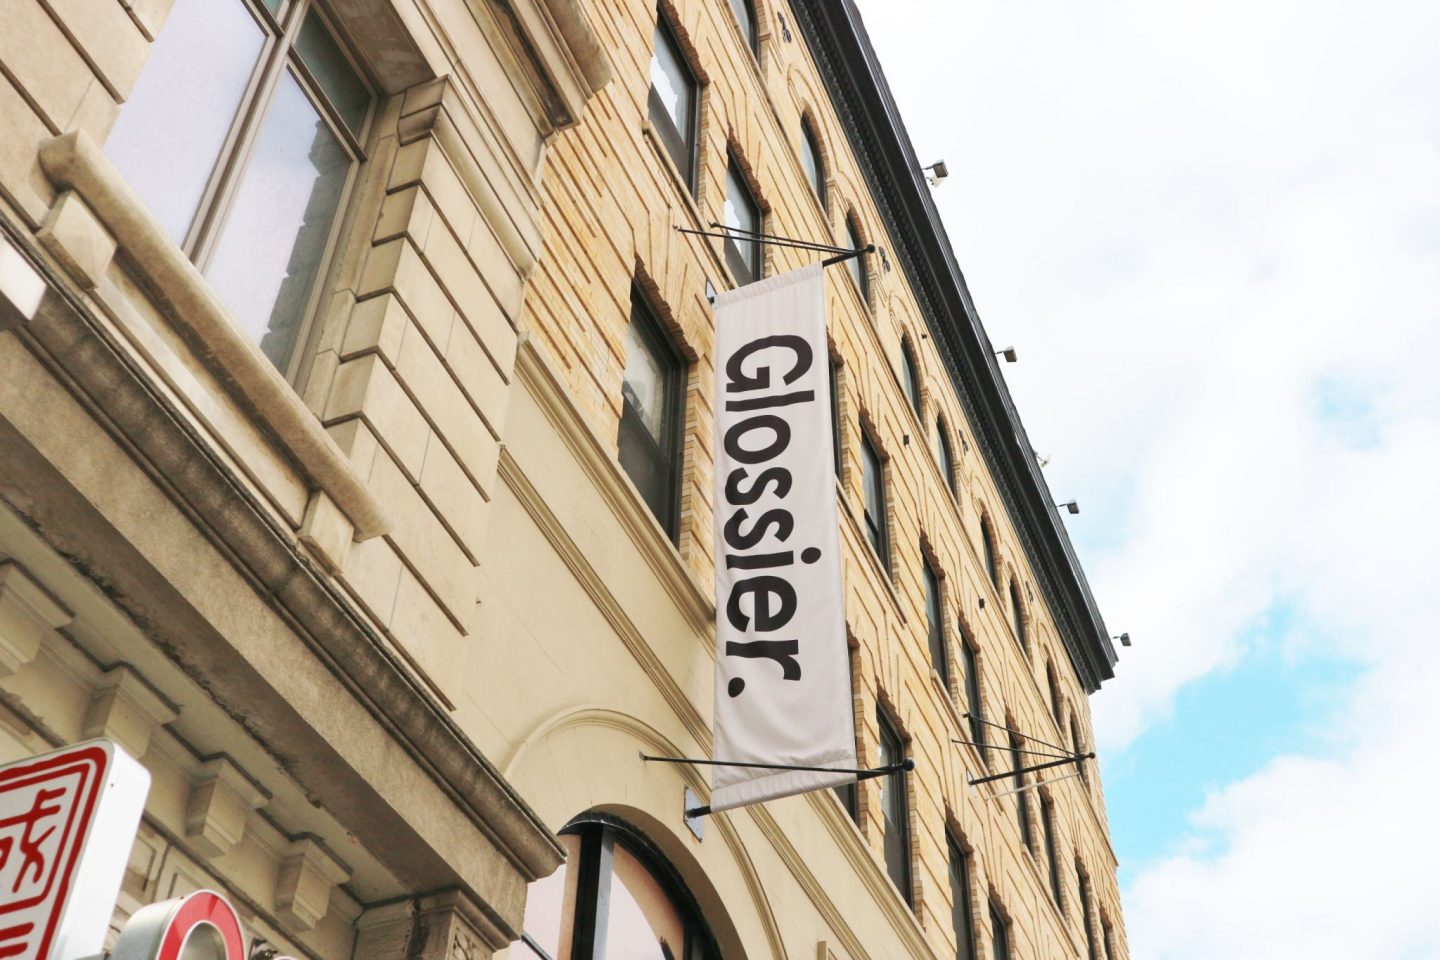 glossier showroom exterior